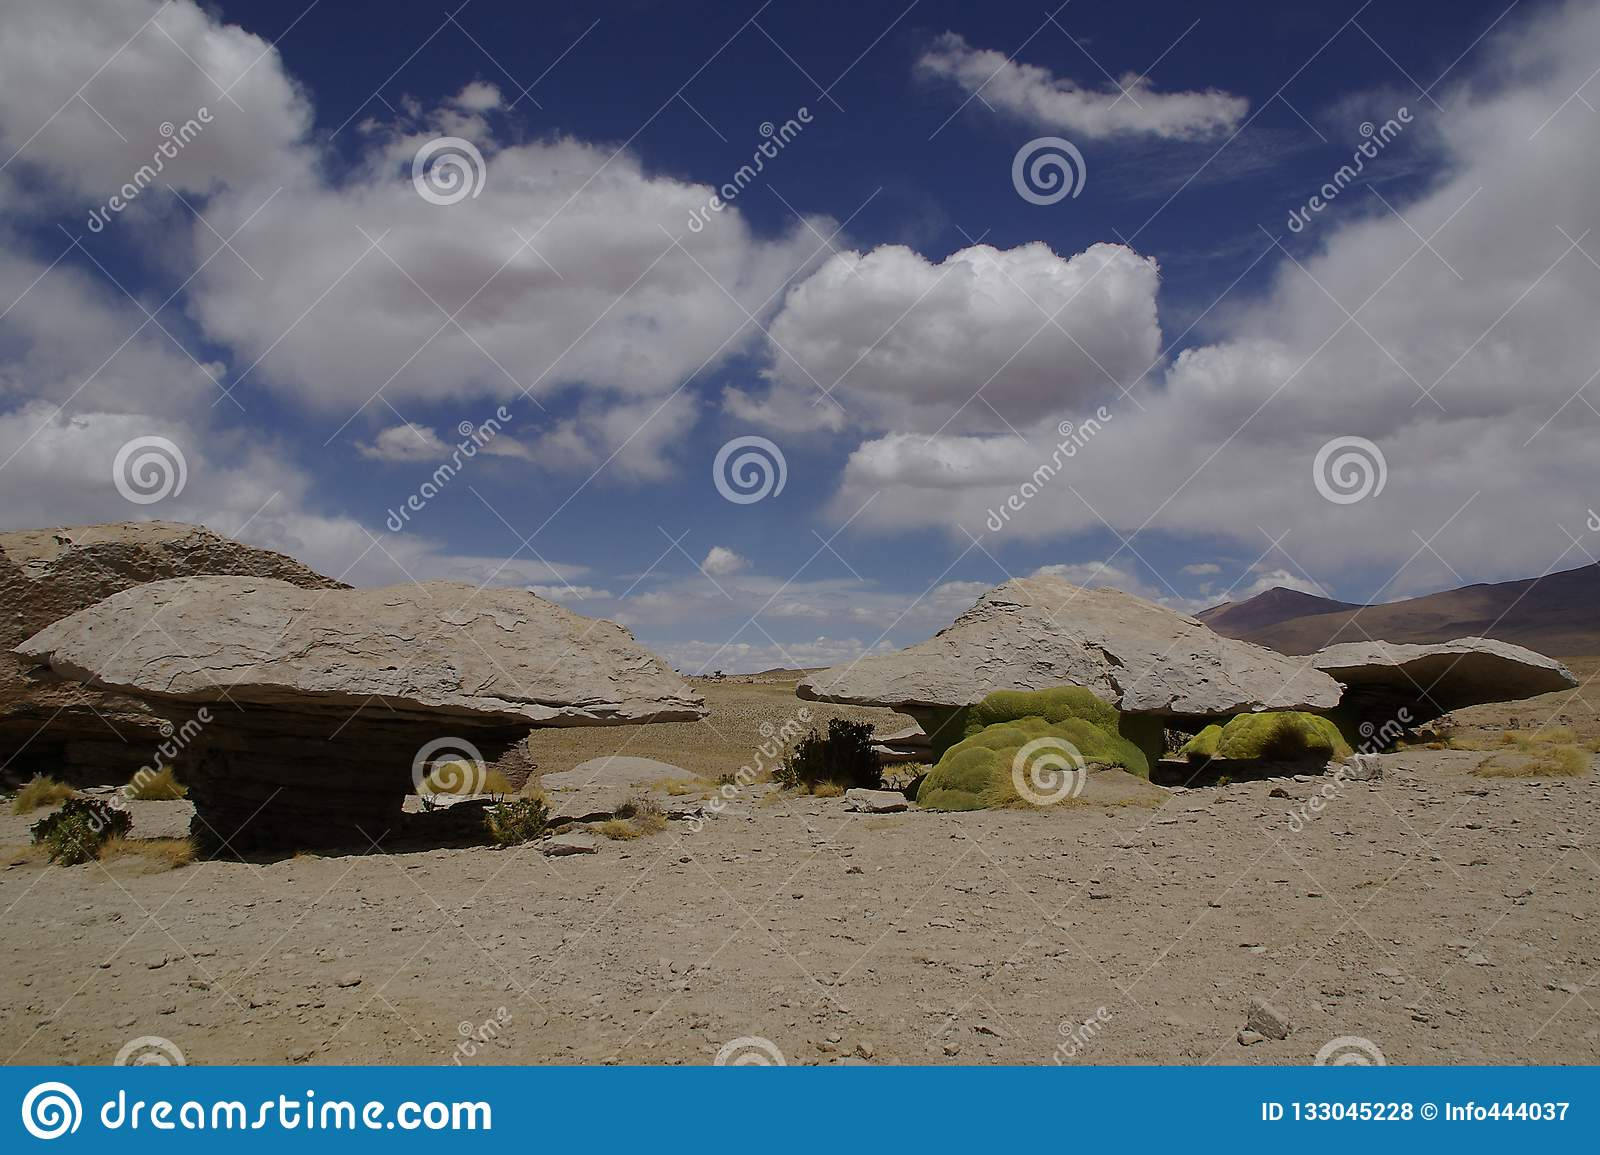 Rock Formation In The Landscape Of Andes Mountains In Bolivia Stock Photo Image Of Panorama Bolivian 133045228